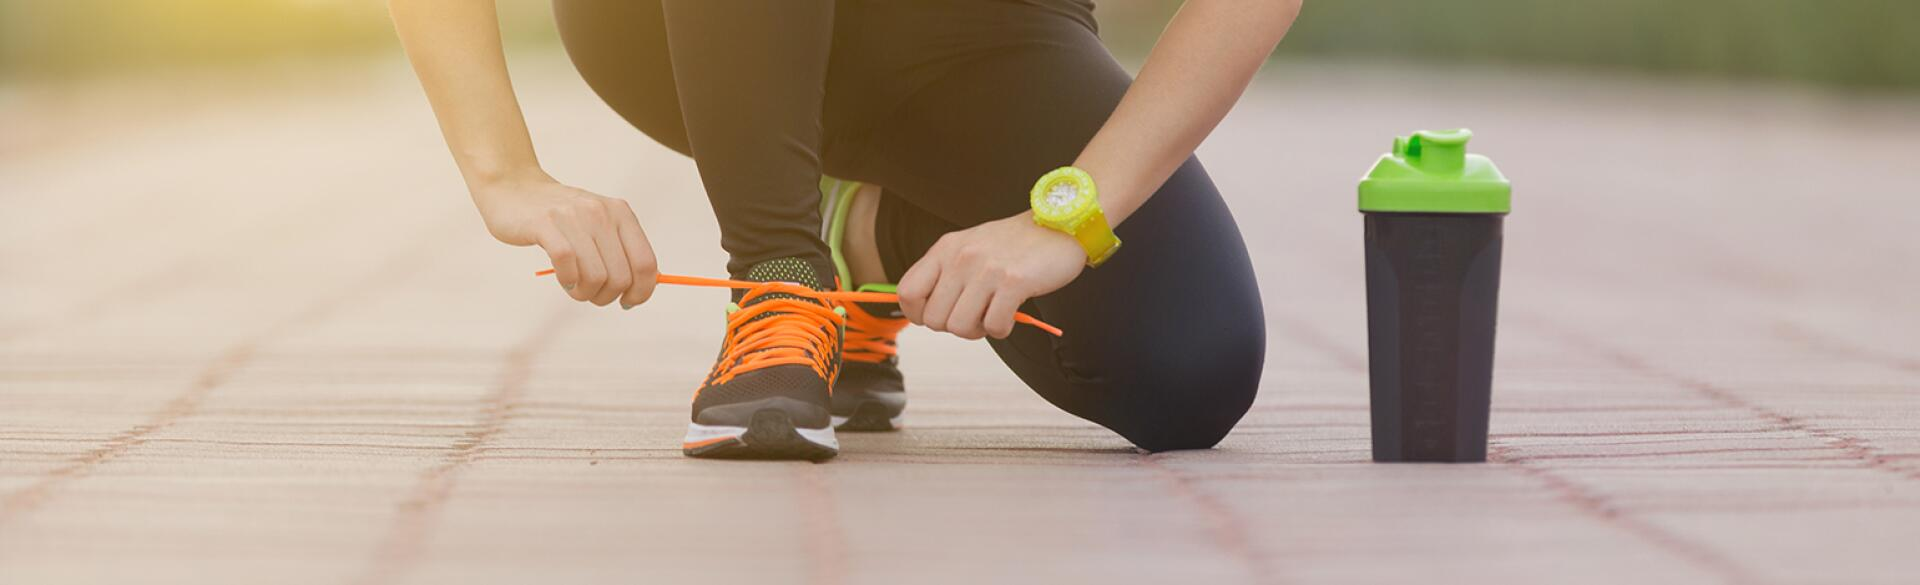 woman tying her shoe while exercising